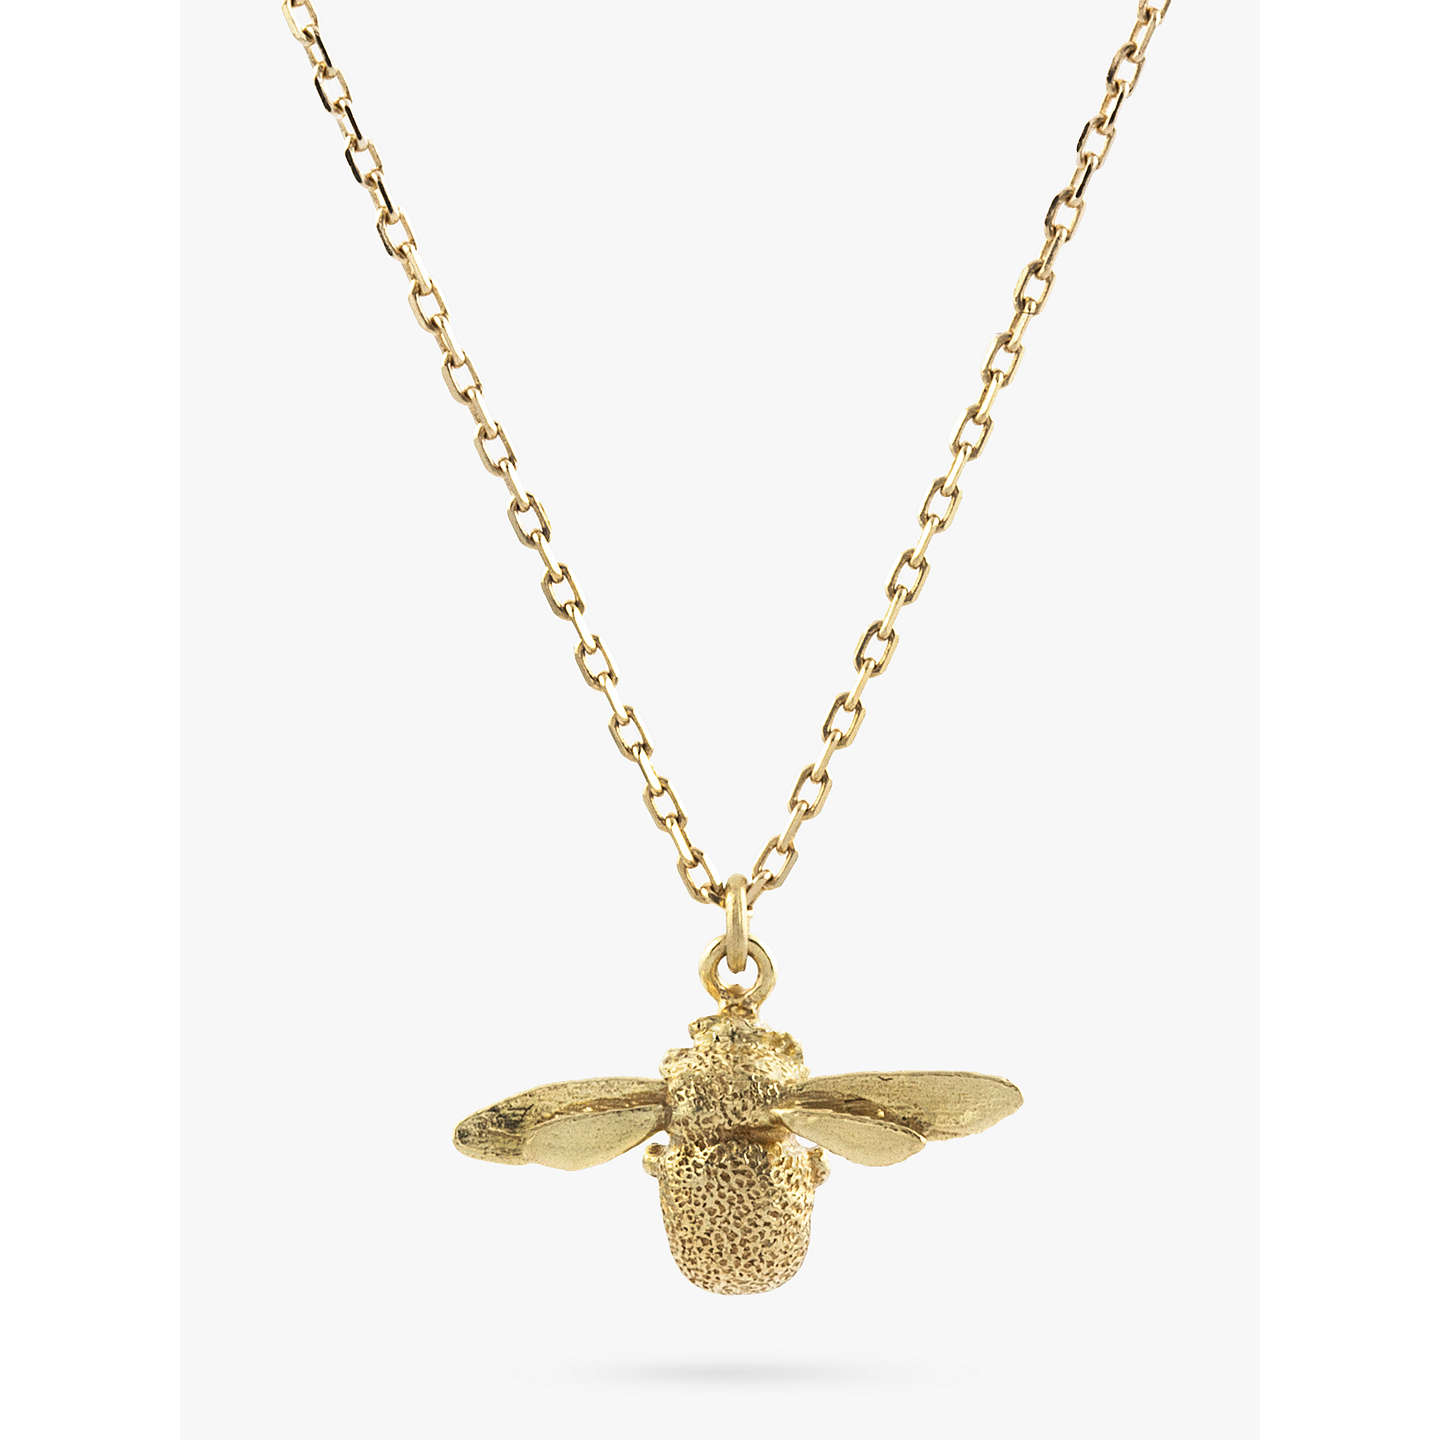 buy honeybee necklace bee jewelry pendant gold bumble